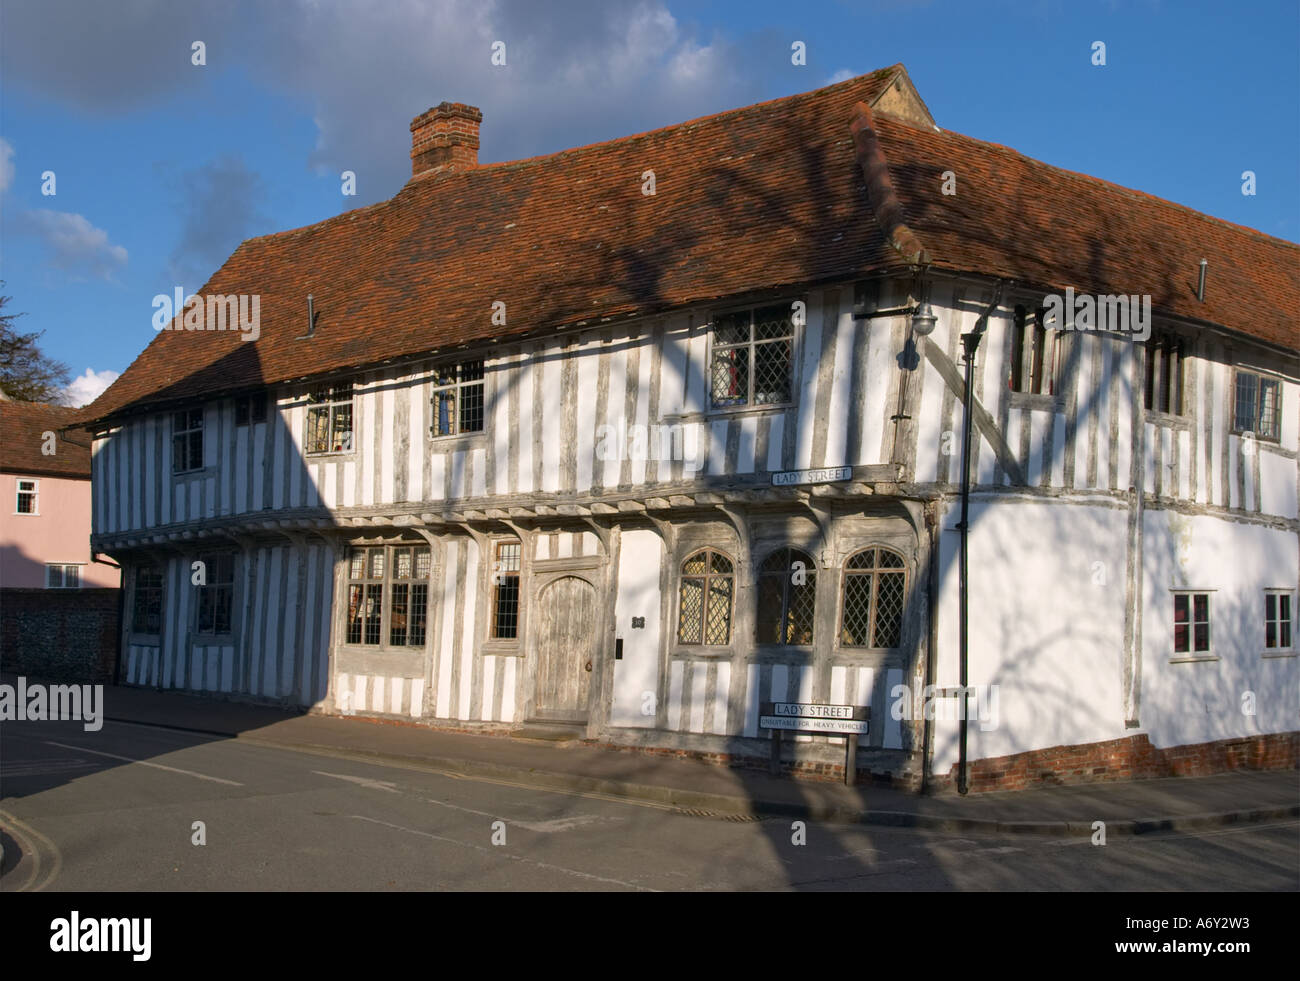 House on the corner of Lady Street Lavenham Suffolk England - Stock Image